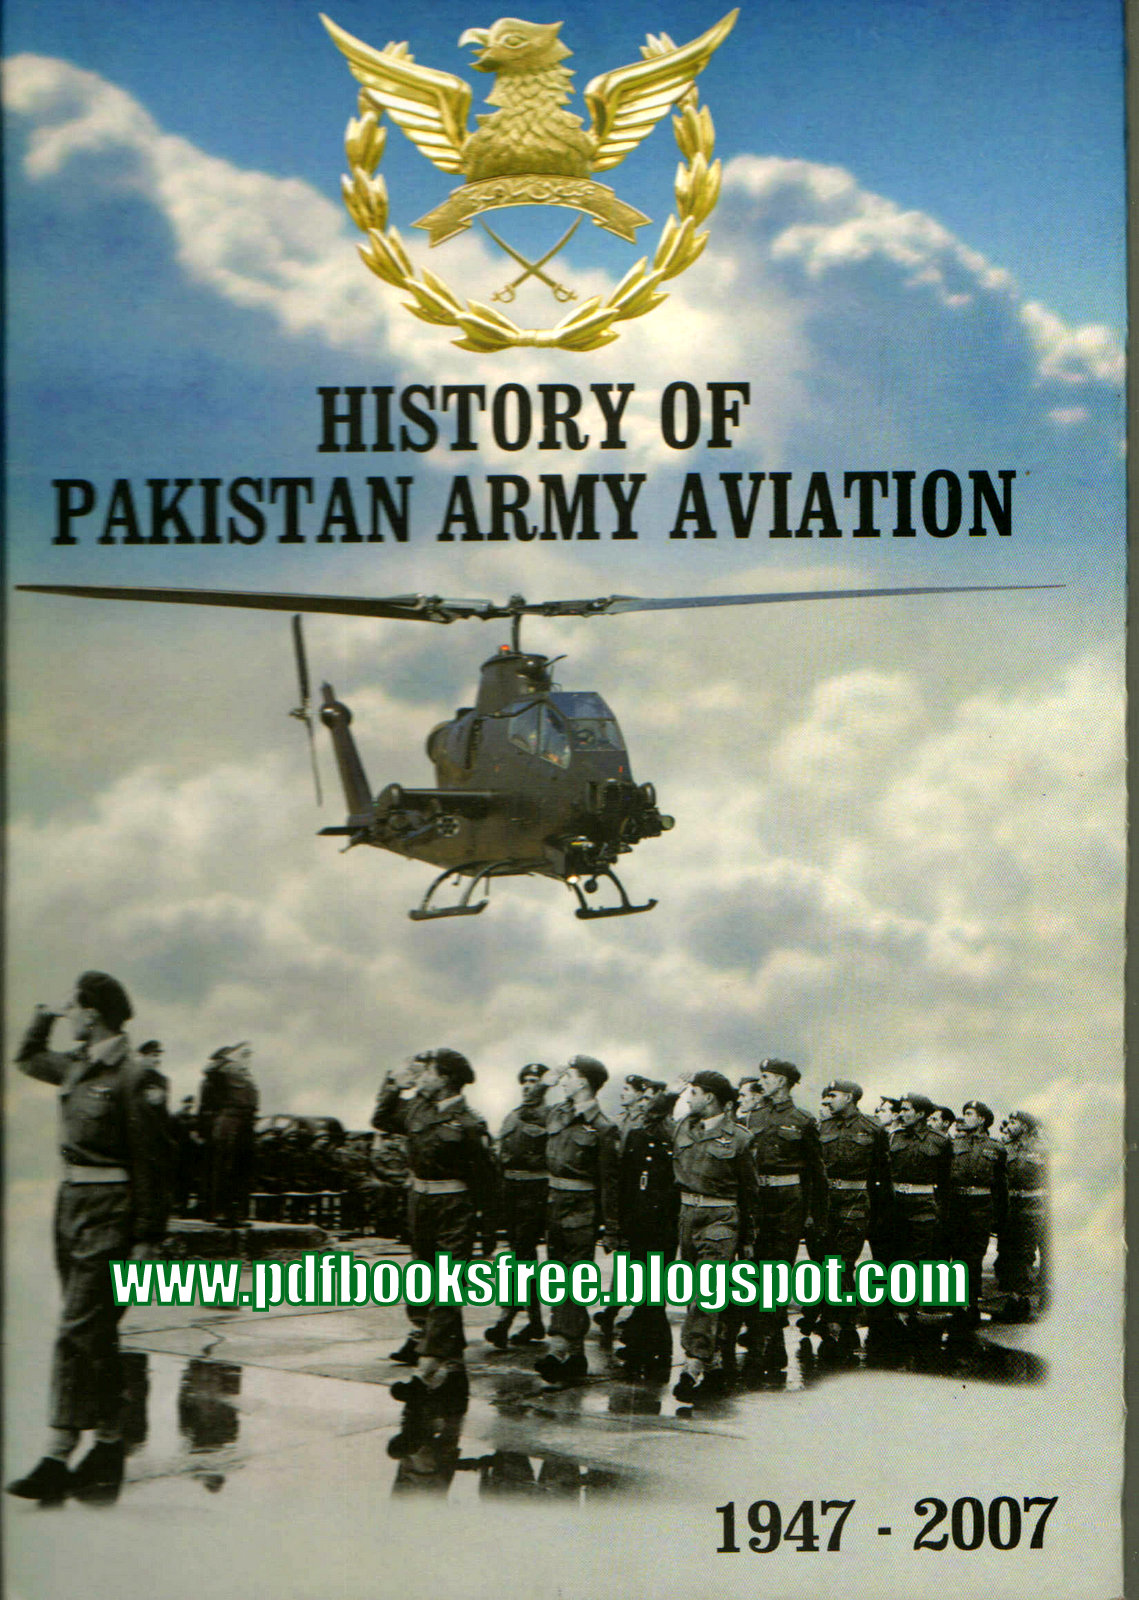 history of pakistan This is a timeline of pakistani history, comprising important legal and territorial changes and political events in pakistan and its predecessor states.